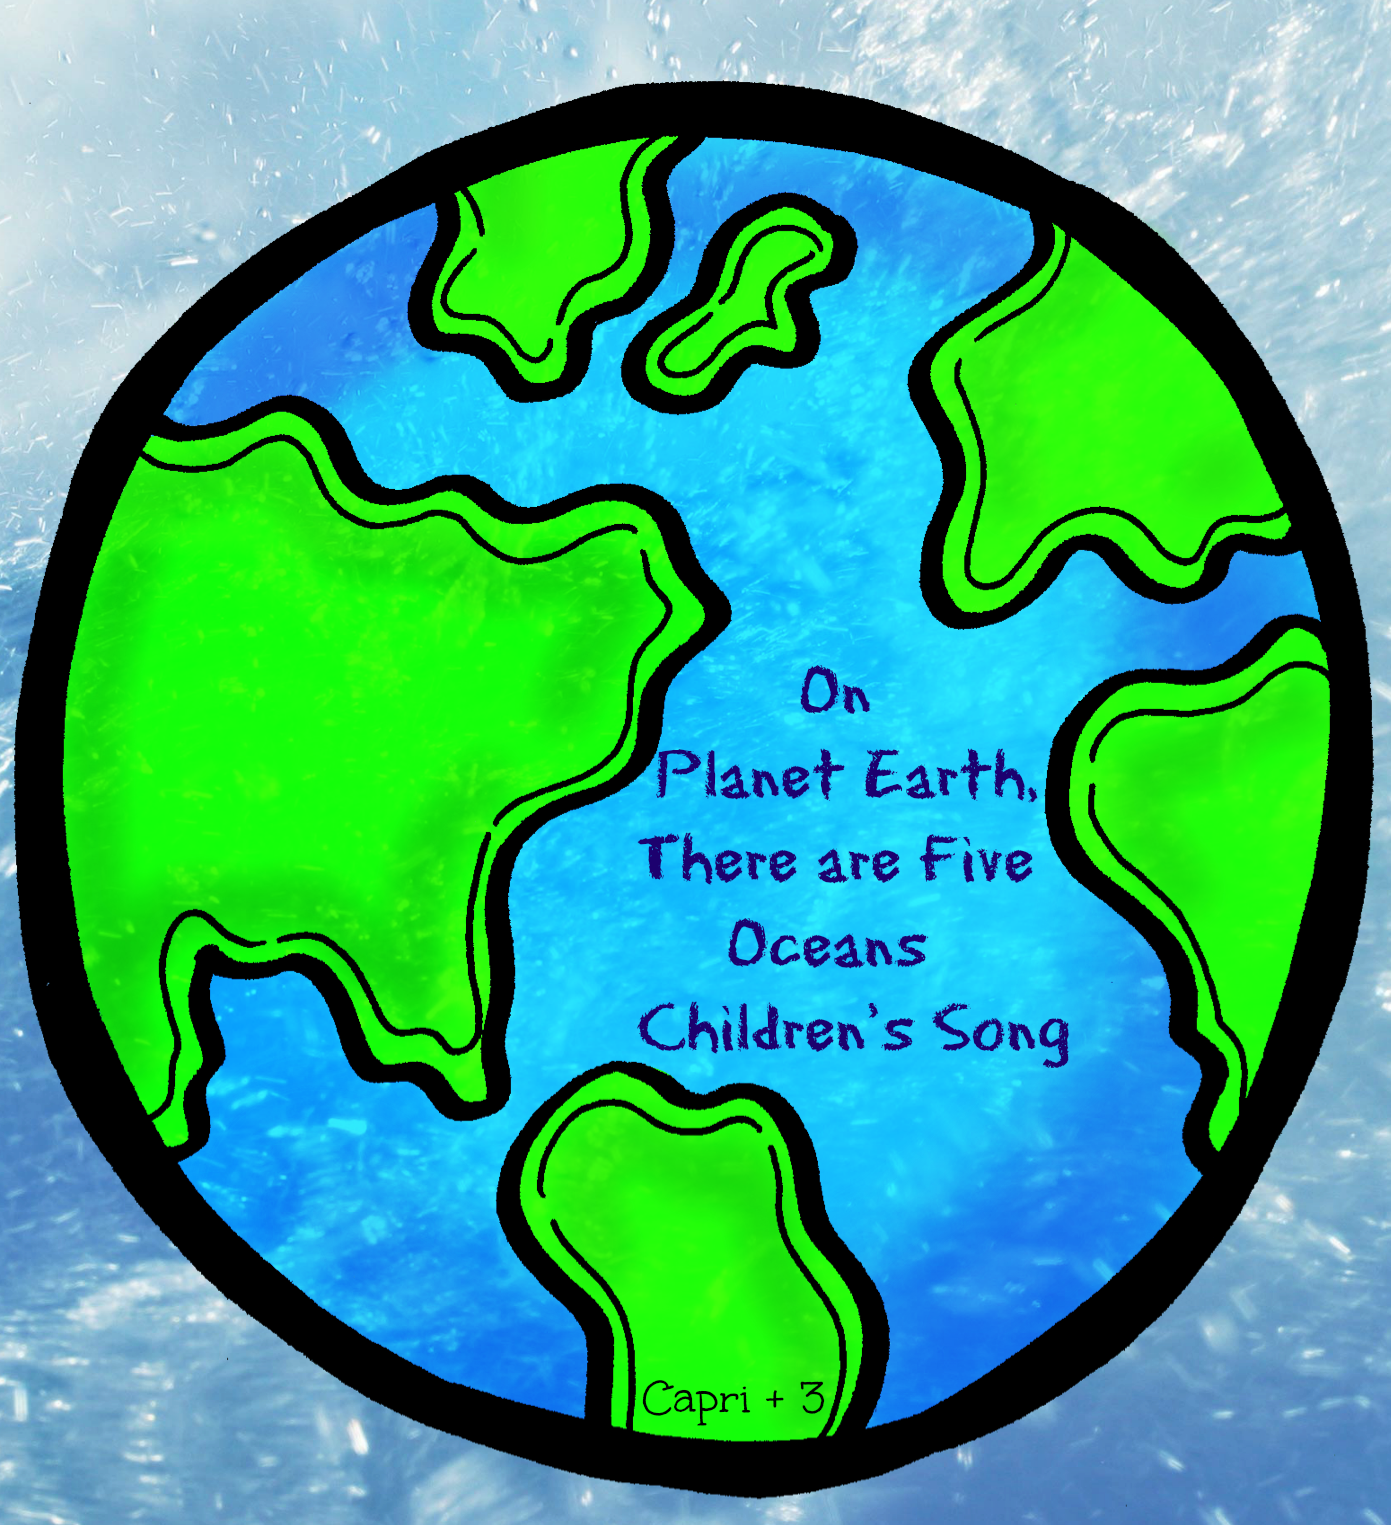 On Planet Earth, There are 5 Oceans\